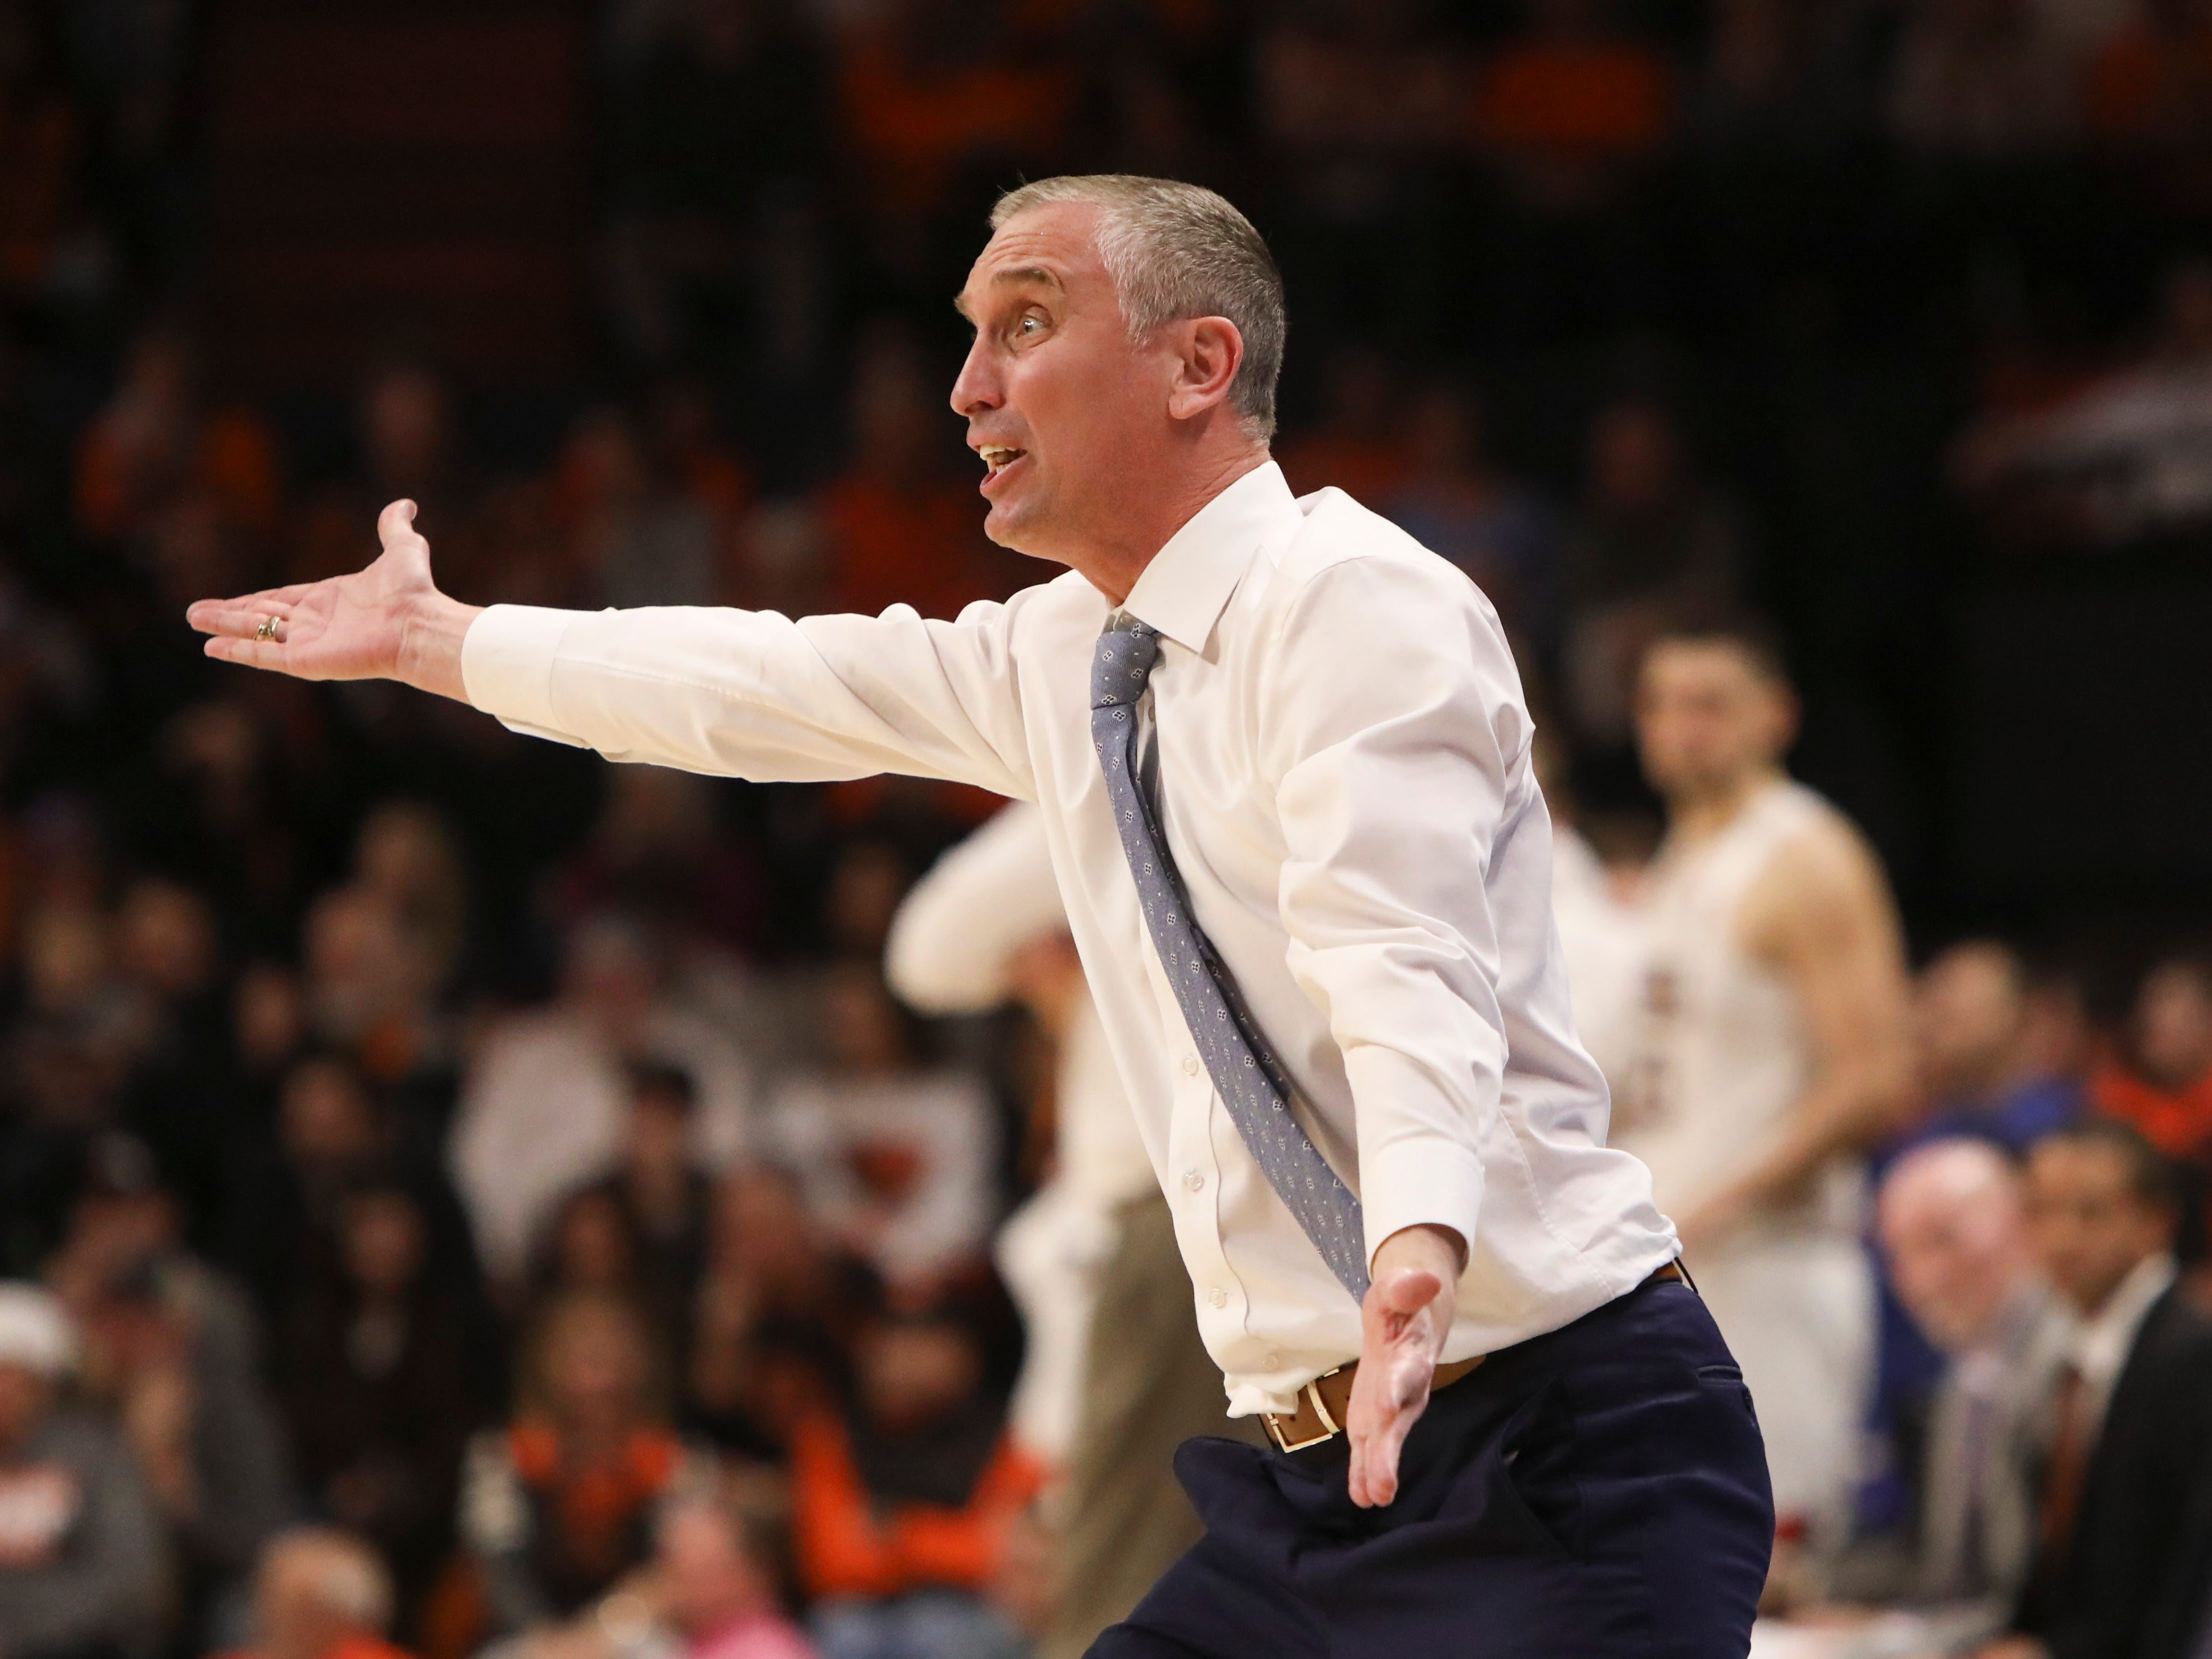 Arizona State head coach Bobby Hurley reacts to a call during the second half of an NCAA college basketball game against Oregon State in Corvallis, Ore., Sunday, March 3, 2019. Arizona State won 74-71.